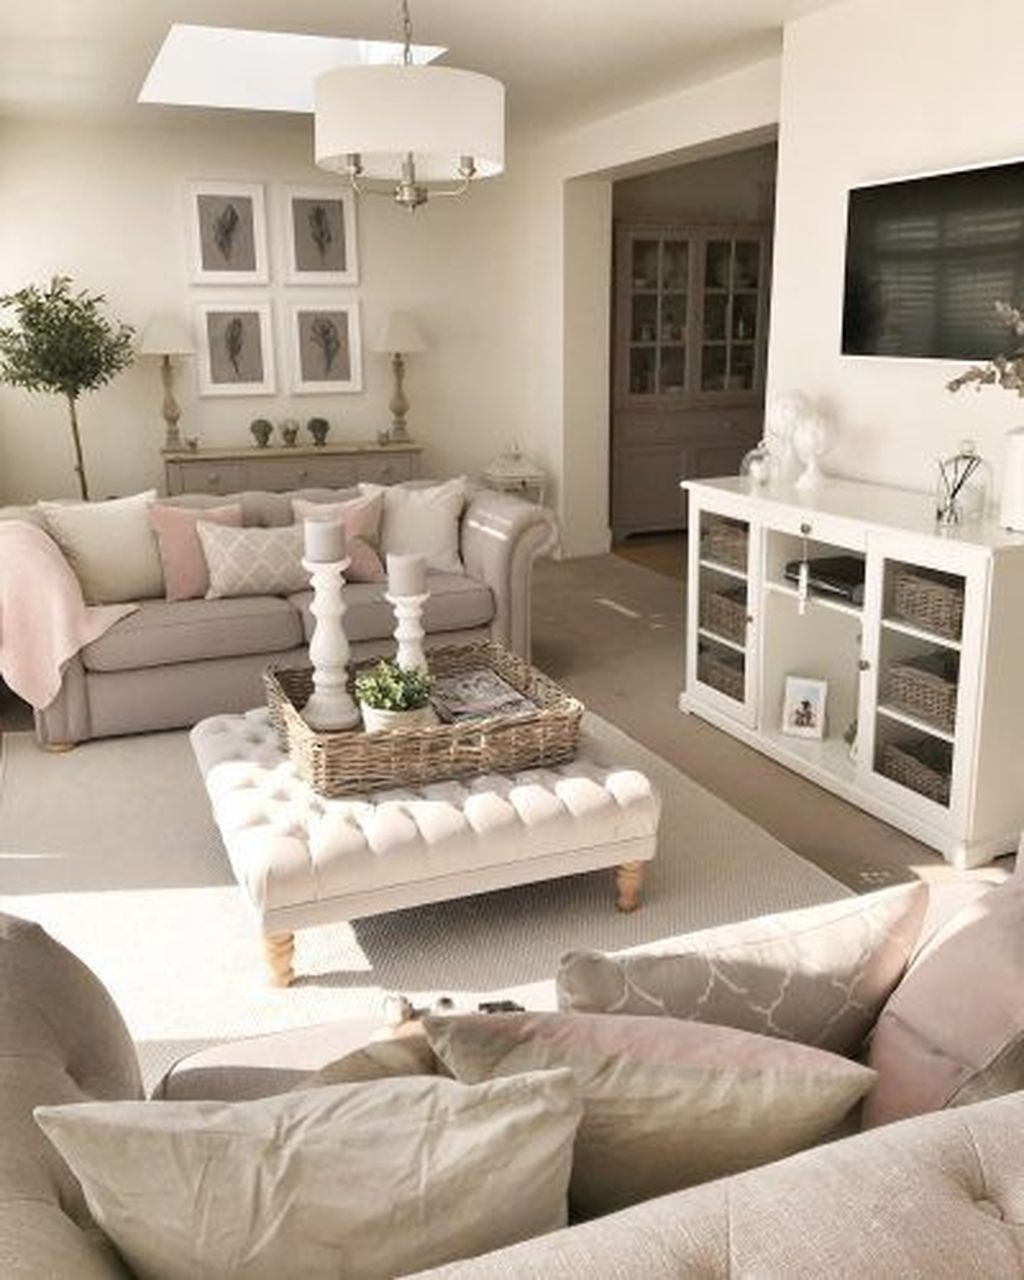 20 Cute And Chic Living Room Design For Your Home Trenduhome Chic Living Room Design Cosy Living Room Shabby Chic Living Room Cottage chic family rooms